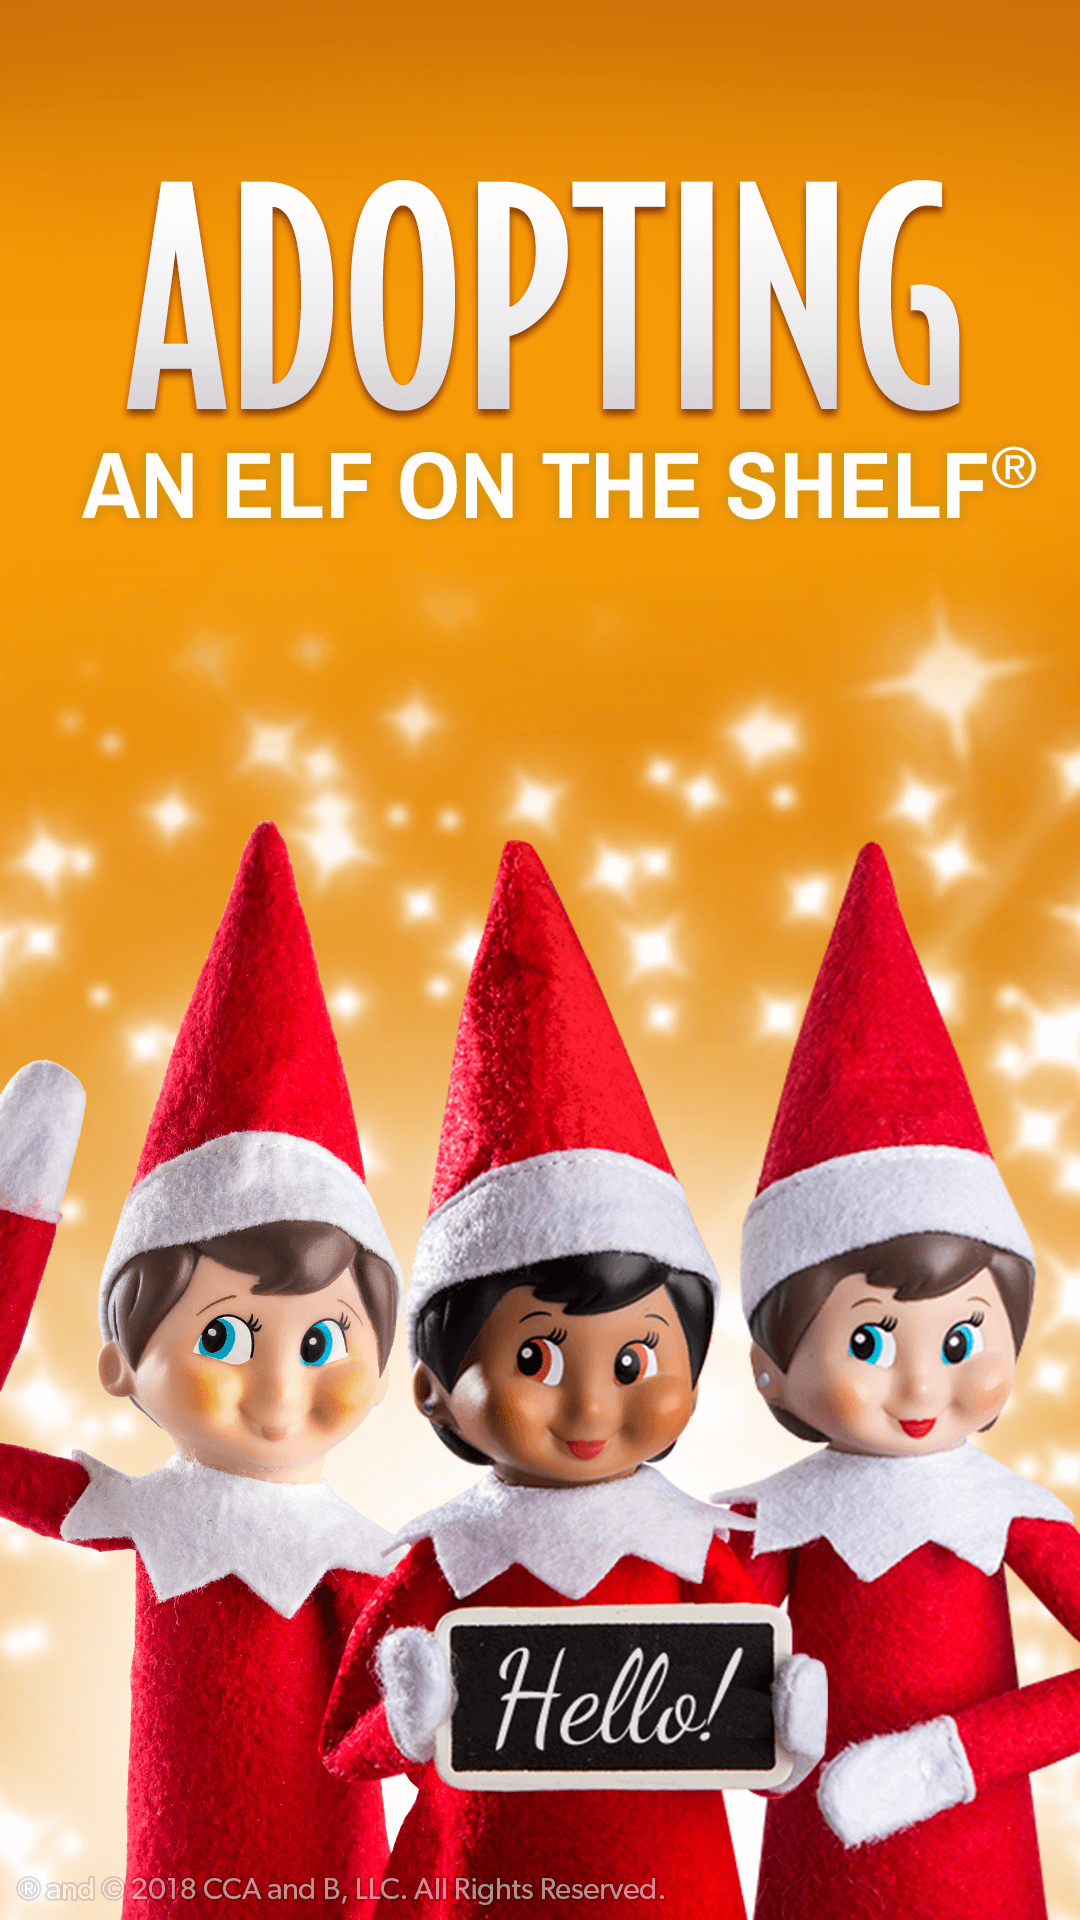 How To Get The Elf On The Shelf At Your House The Elf On The Shelf Elf On The Shelf Elf The Elf